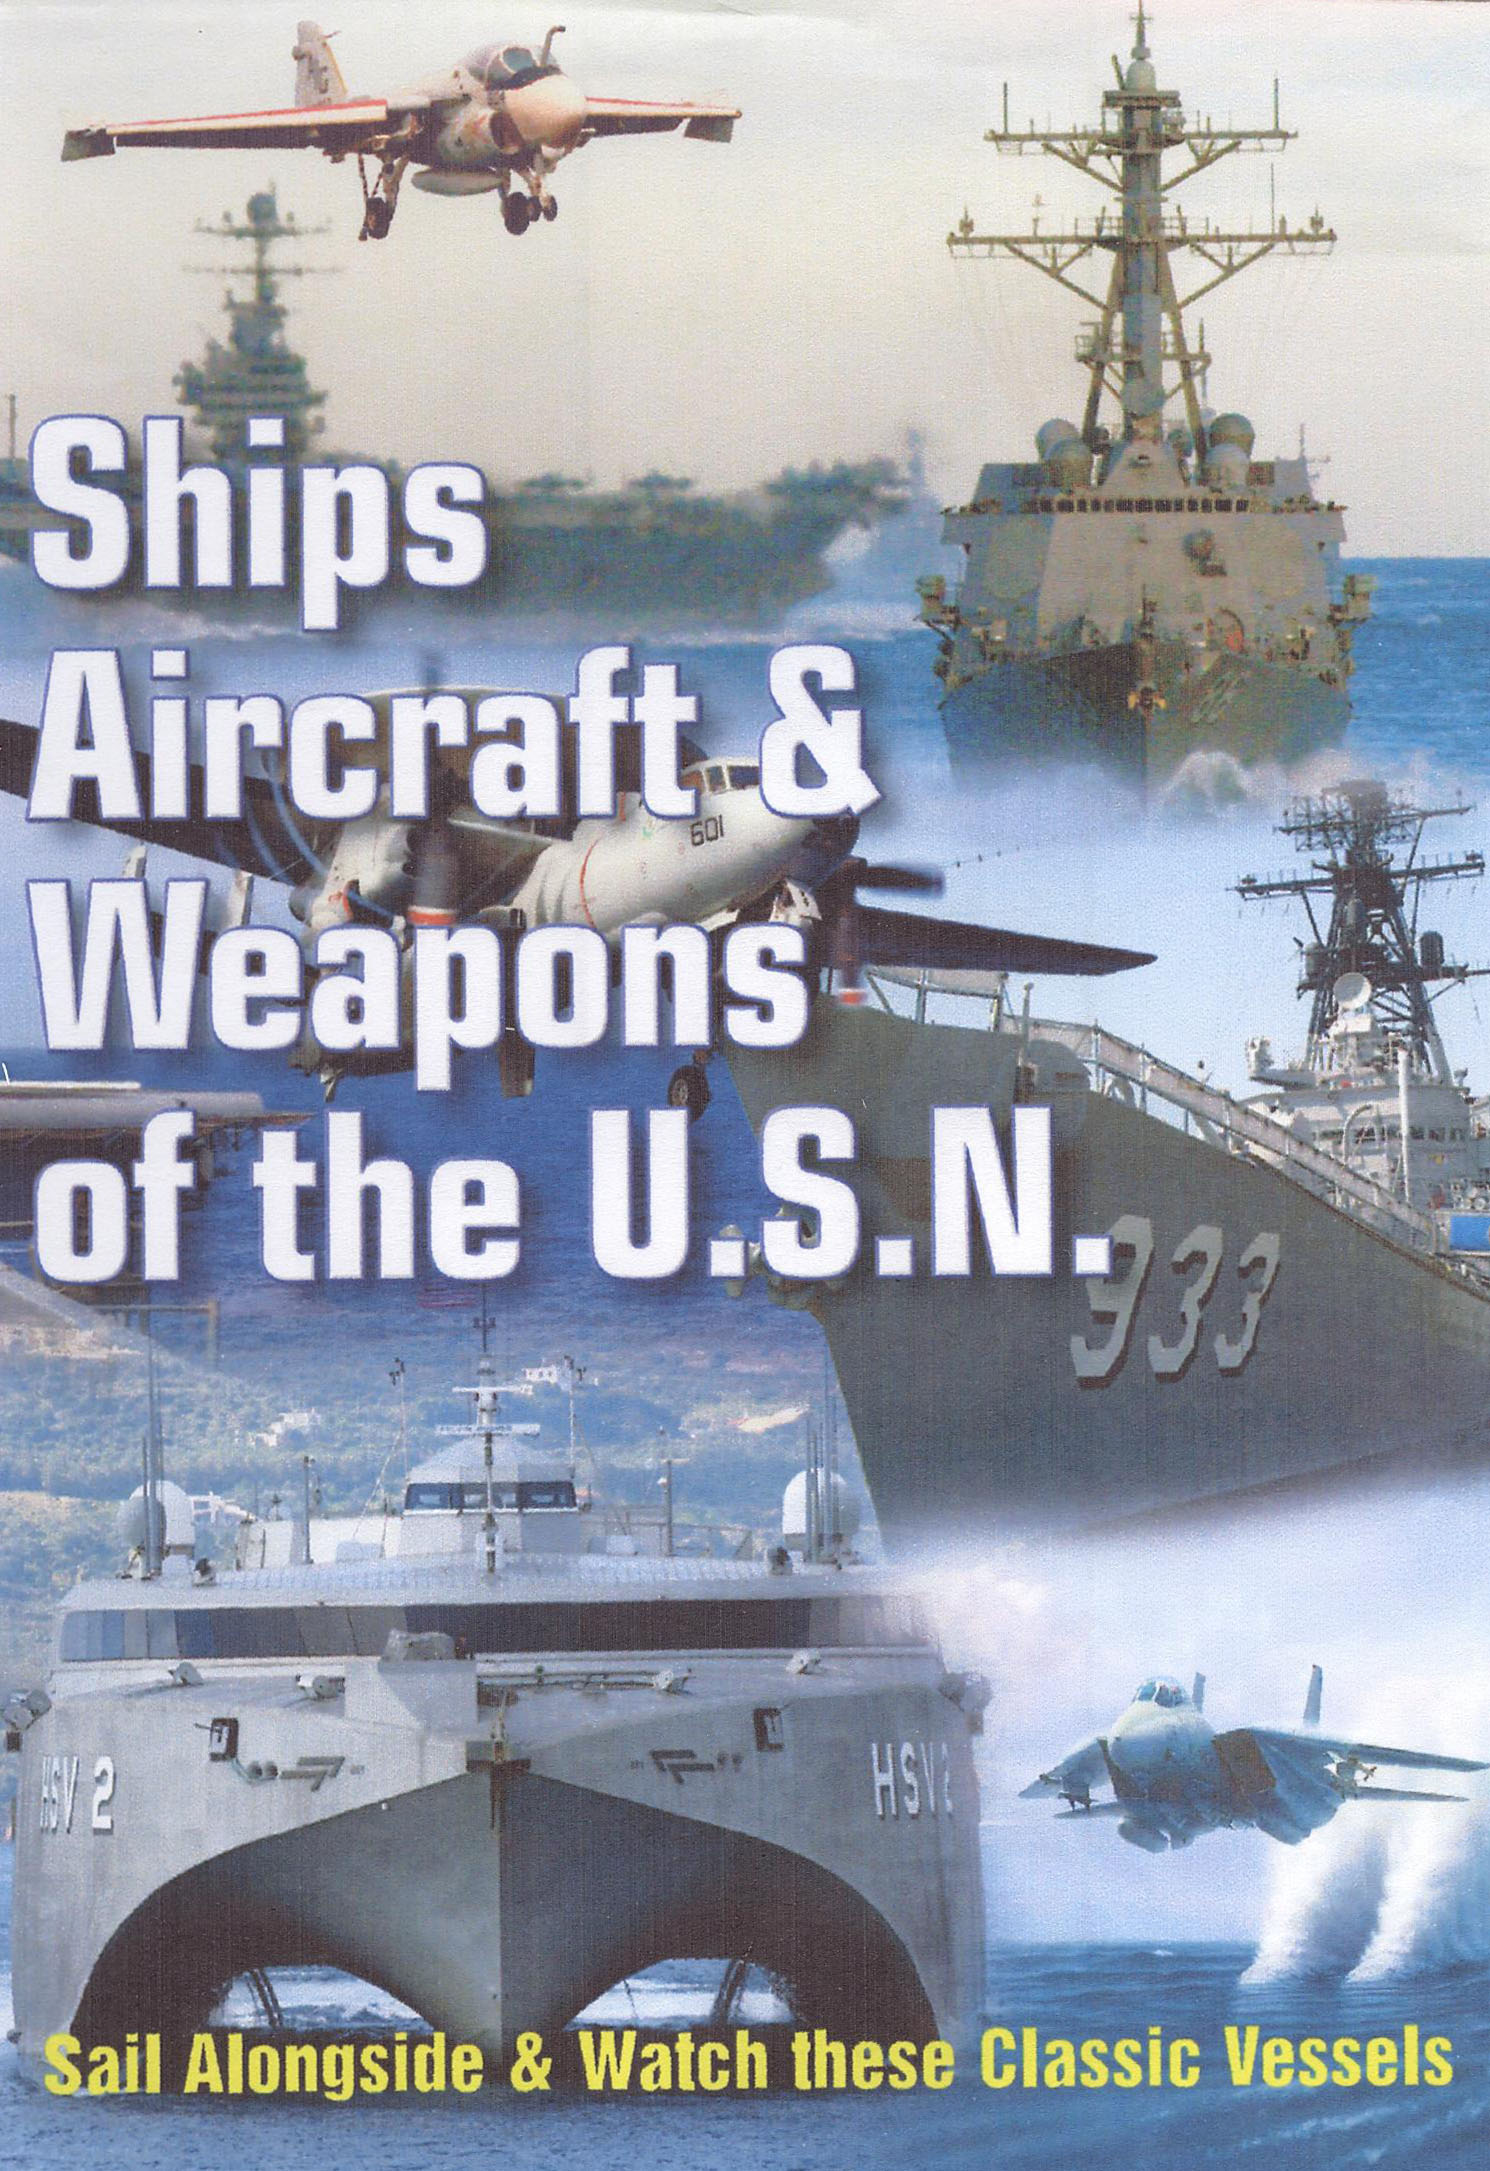 Ships, Aircraft, and Weapons of the U.S. Navy